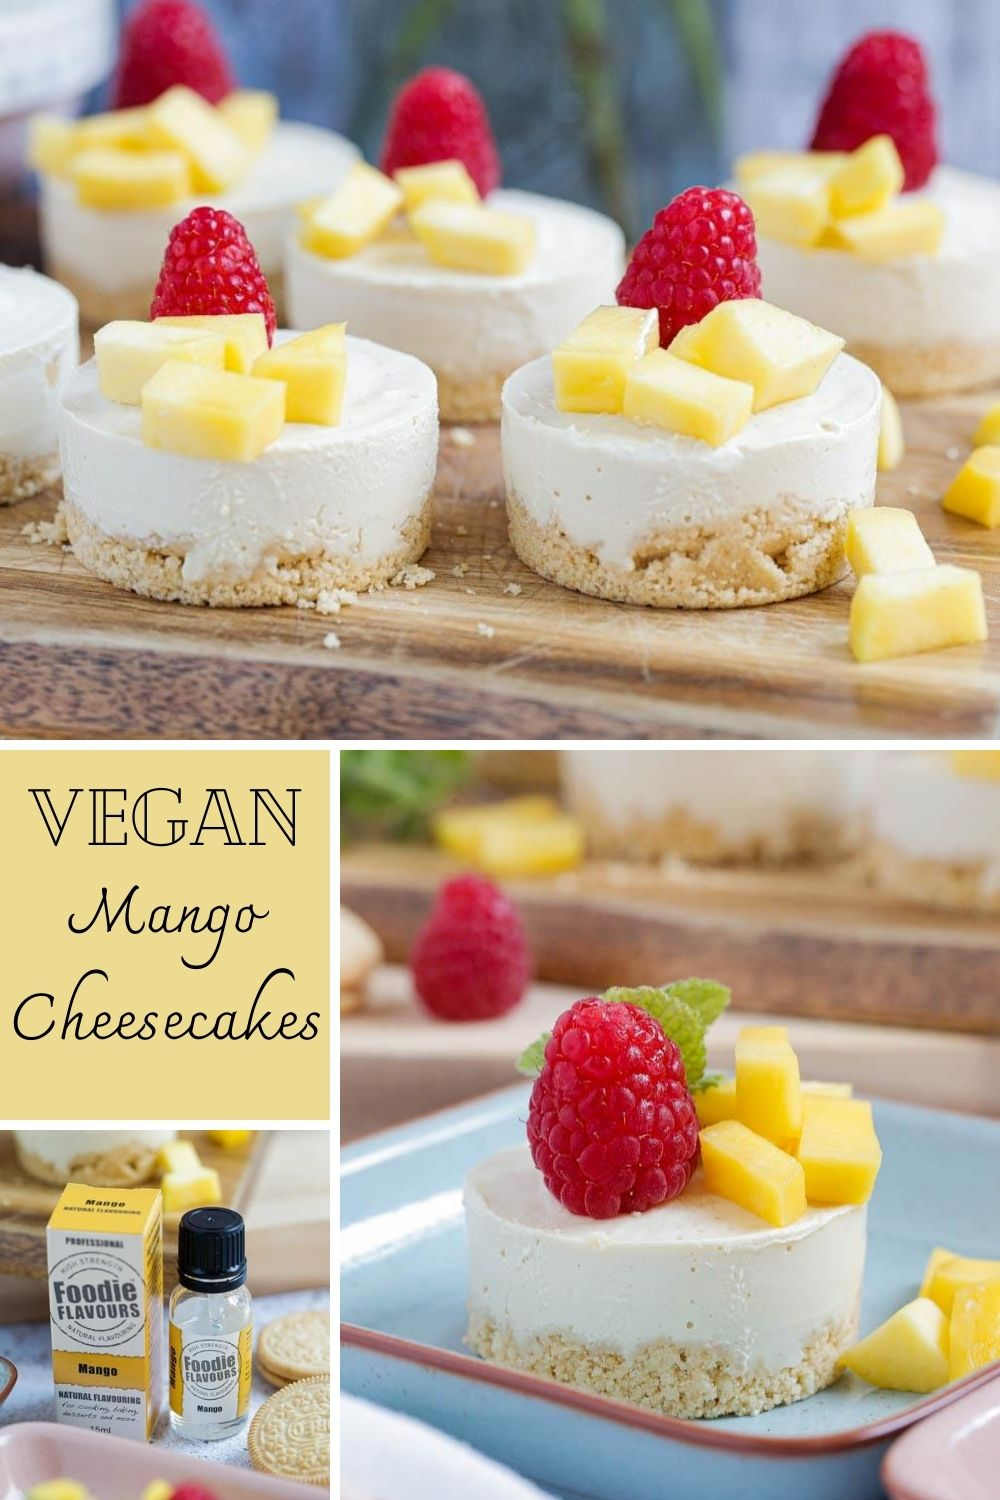 Sweet and fruity these no bake vegan mango cheesecakes have a golden biscuit and white chocolate base with a silky smooth and creamy topping. So simple to whip up too! #veganrecipes #vegandesserts #vegancheesecake #mango #rawcheesecake #cashewcheesecake #oreos #oreocheesecake #vegan | Recipe on thecookandhim.com